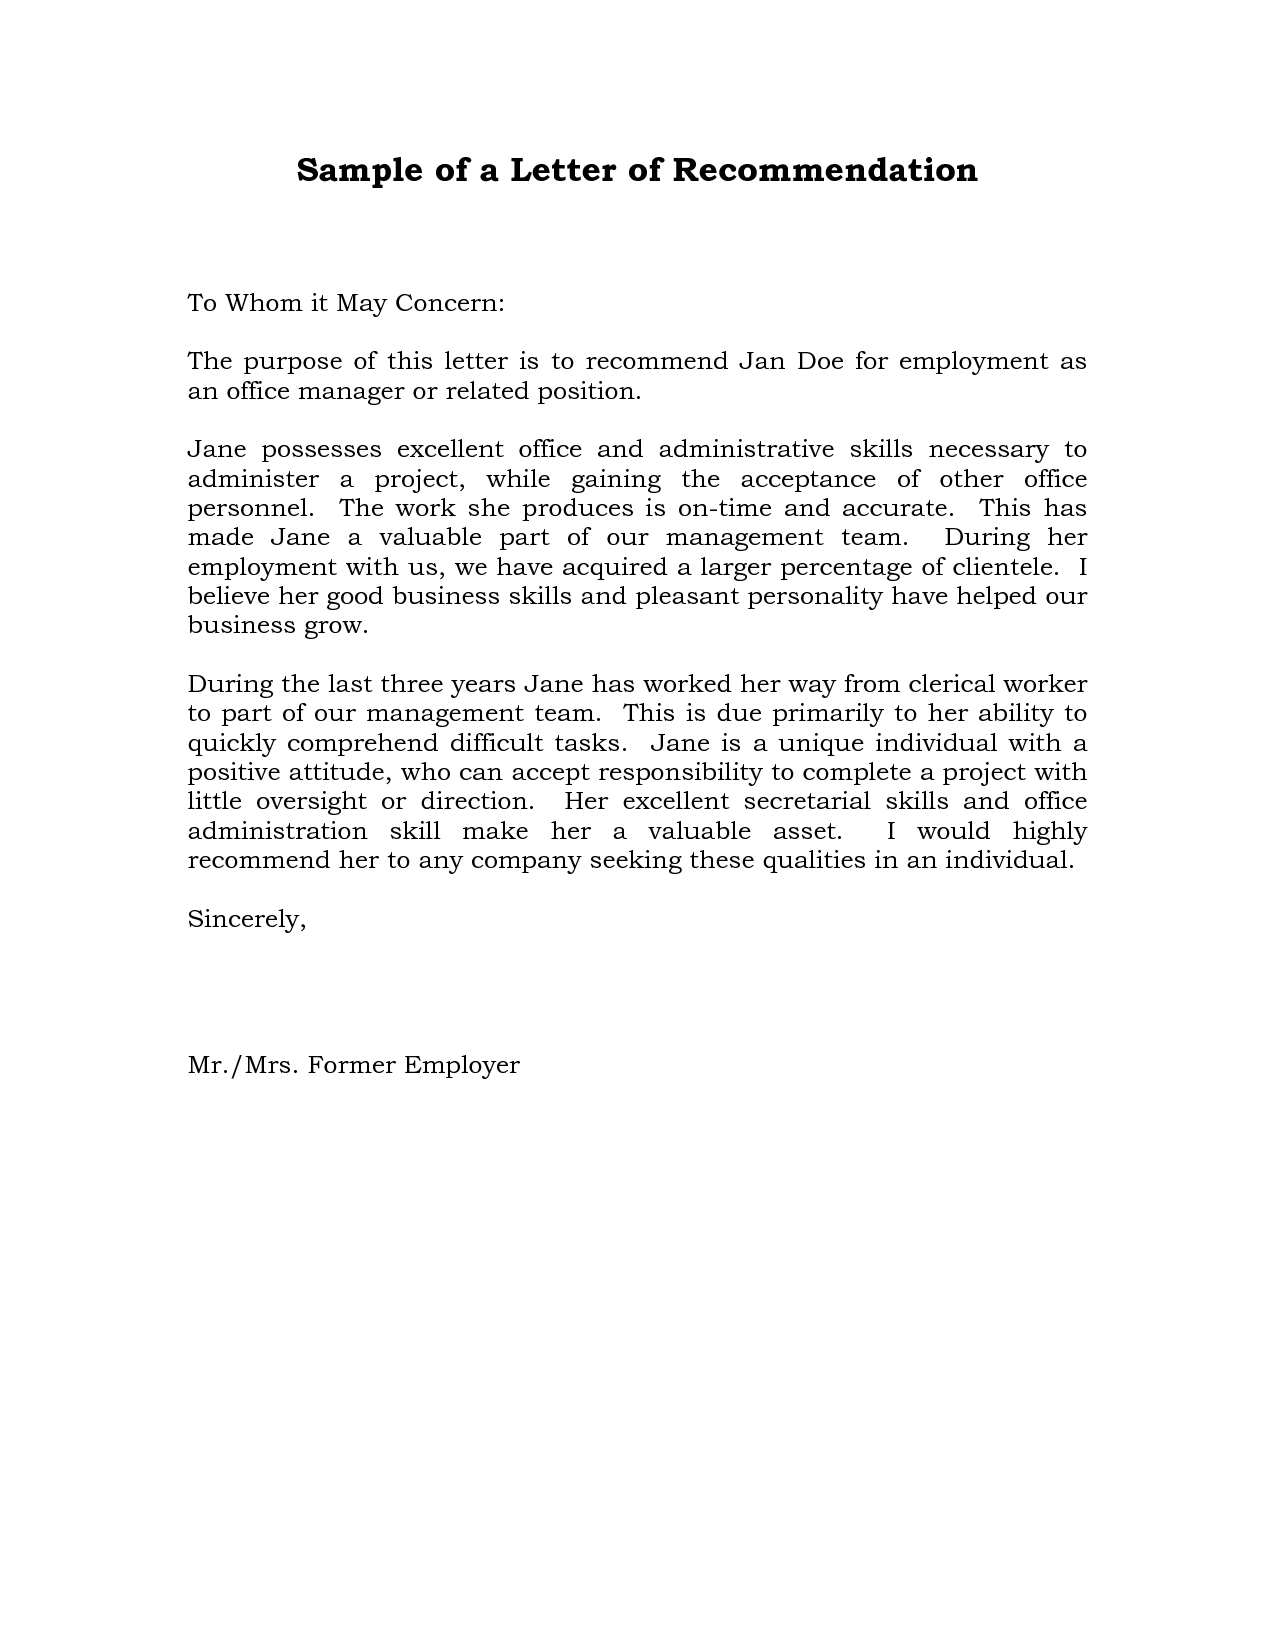 Reference Letter of Recommendation Sample – Examples of Reference Letters for Employment